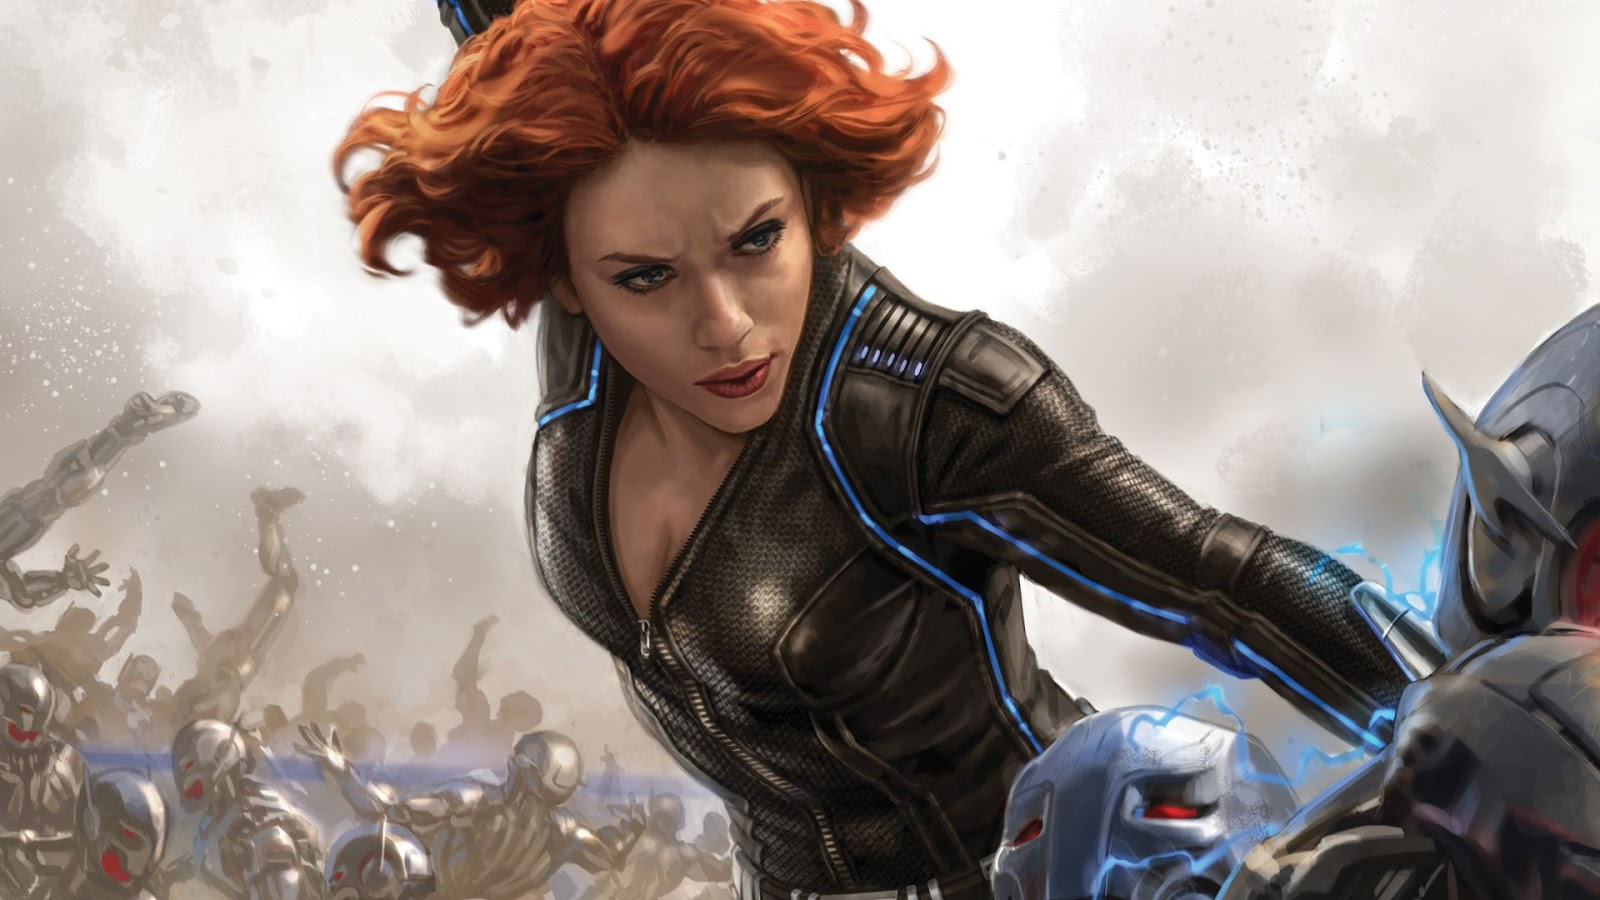 black-widow-wallpaper-mobile